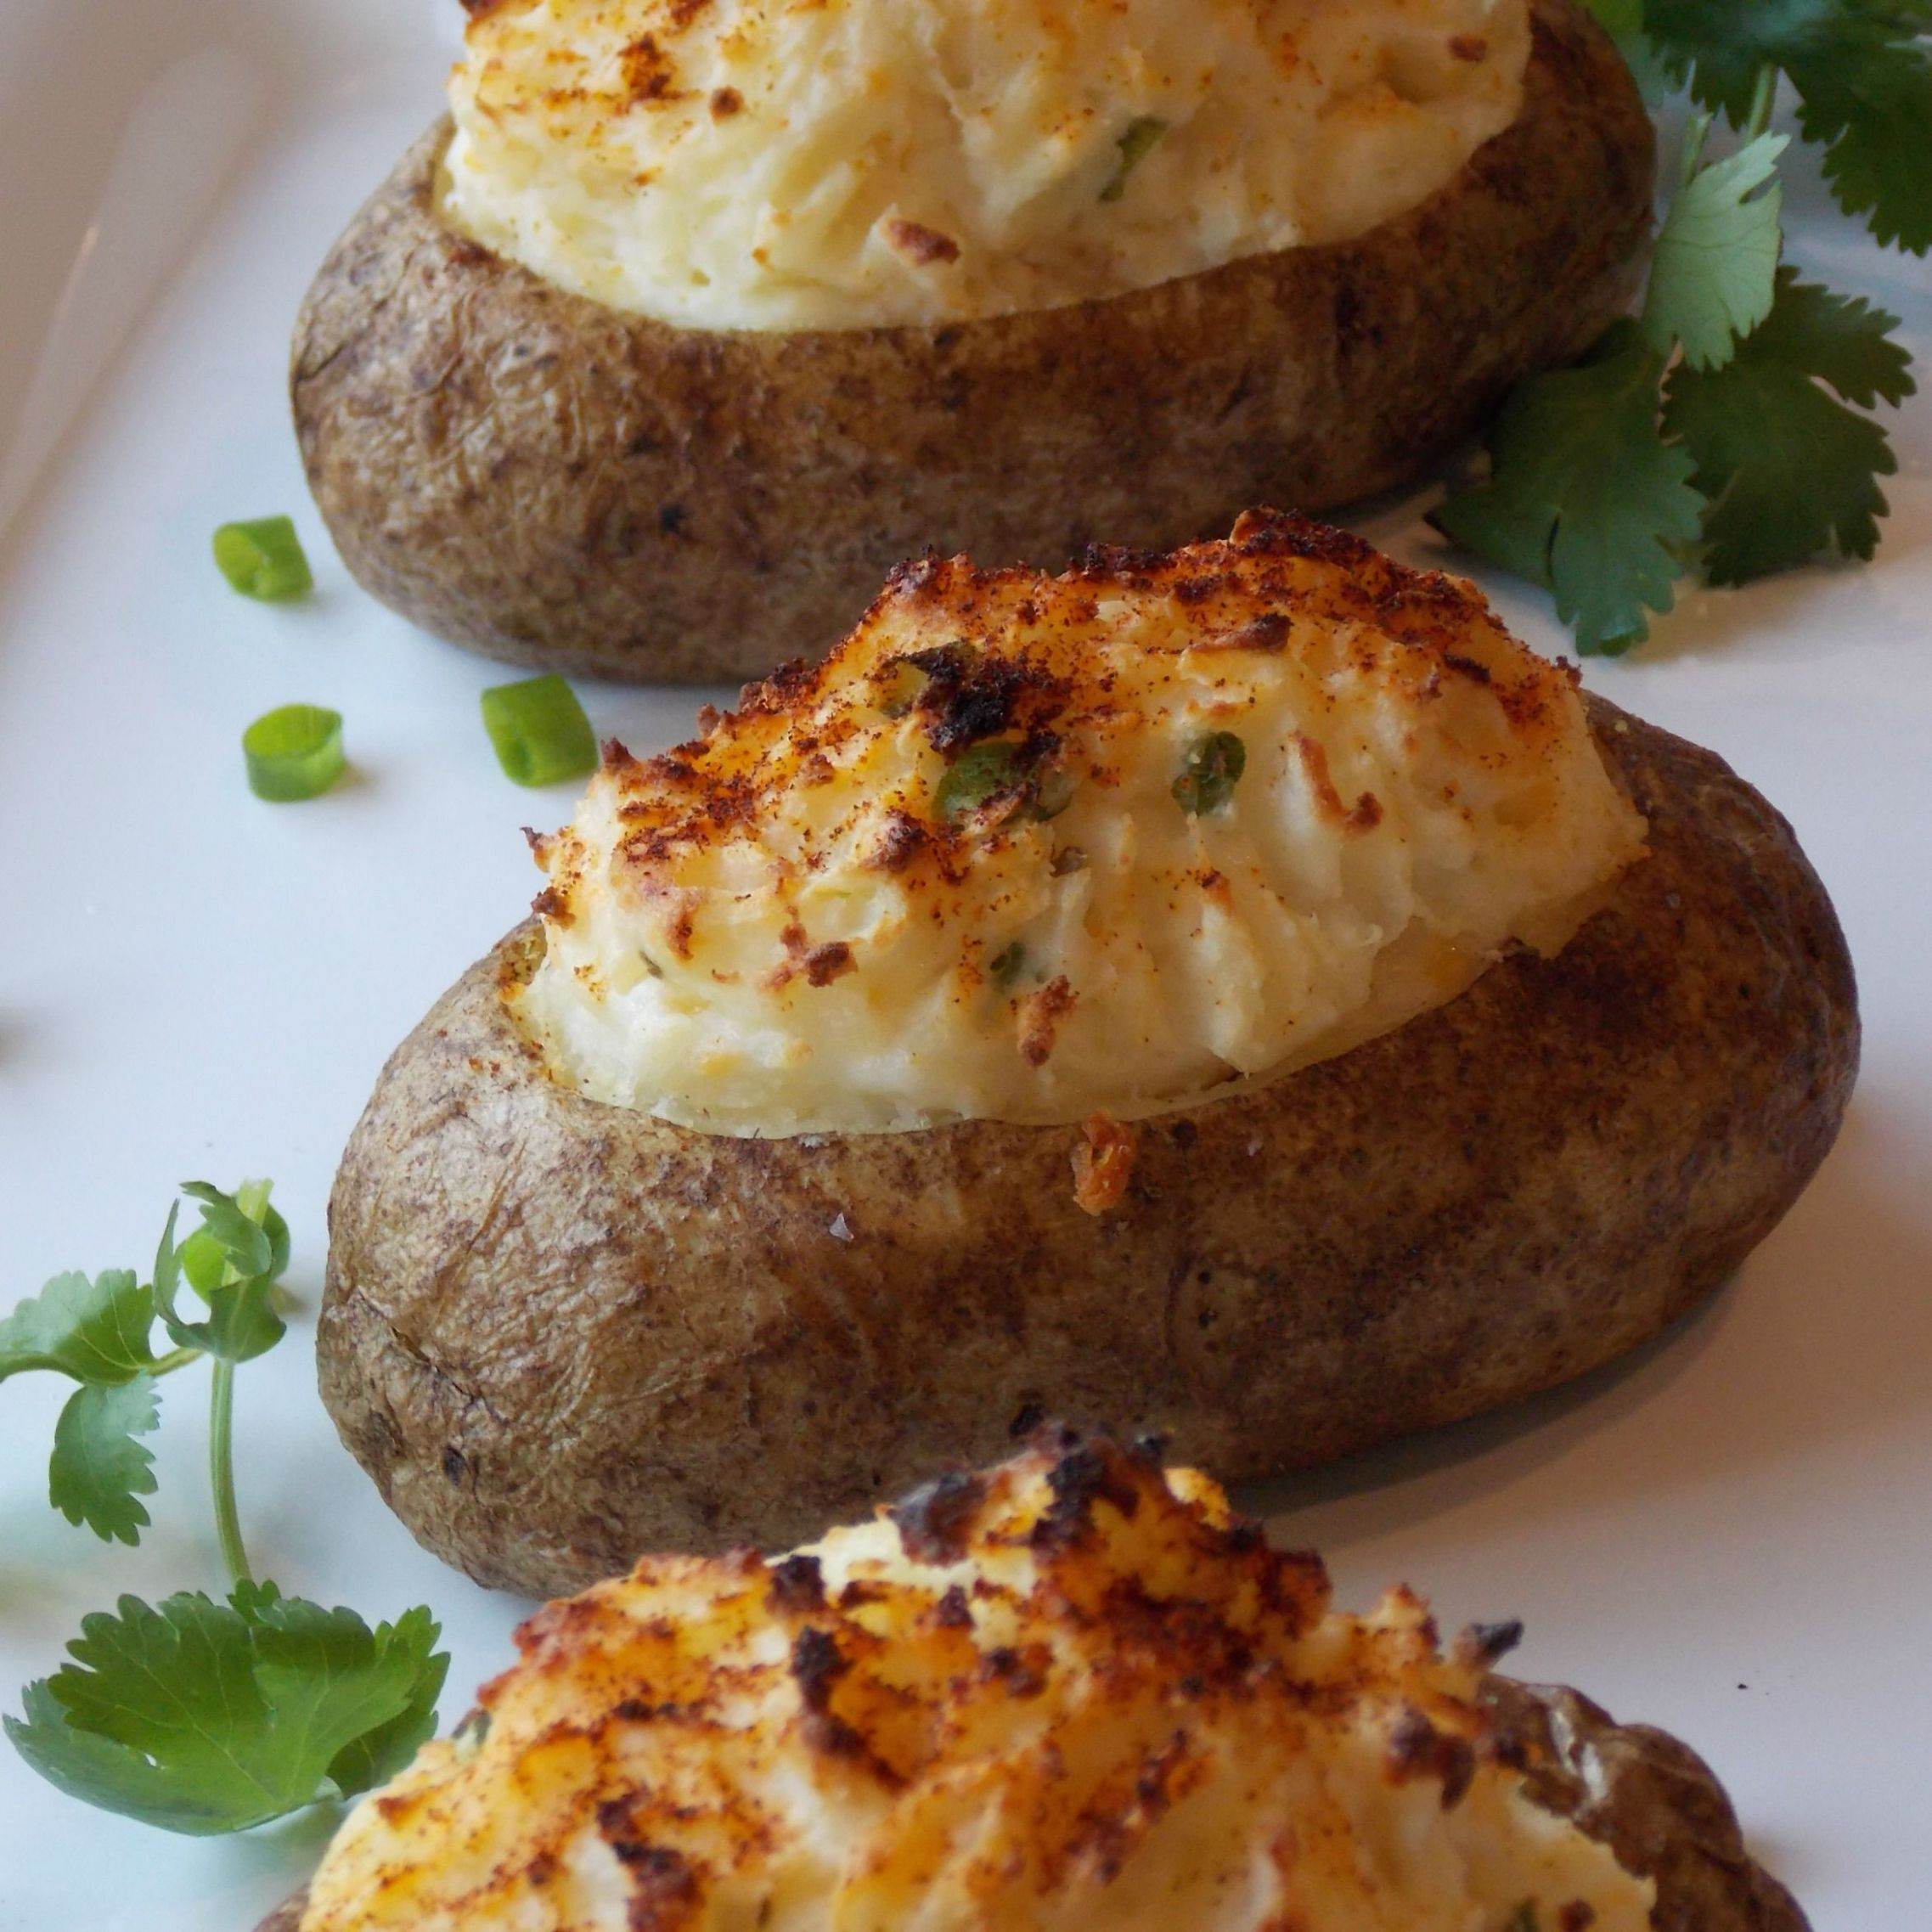 Stuffed jacket potatoes recipe - All recipes UK - Recipes Potato Jackets